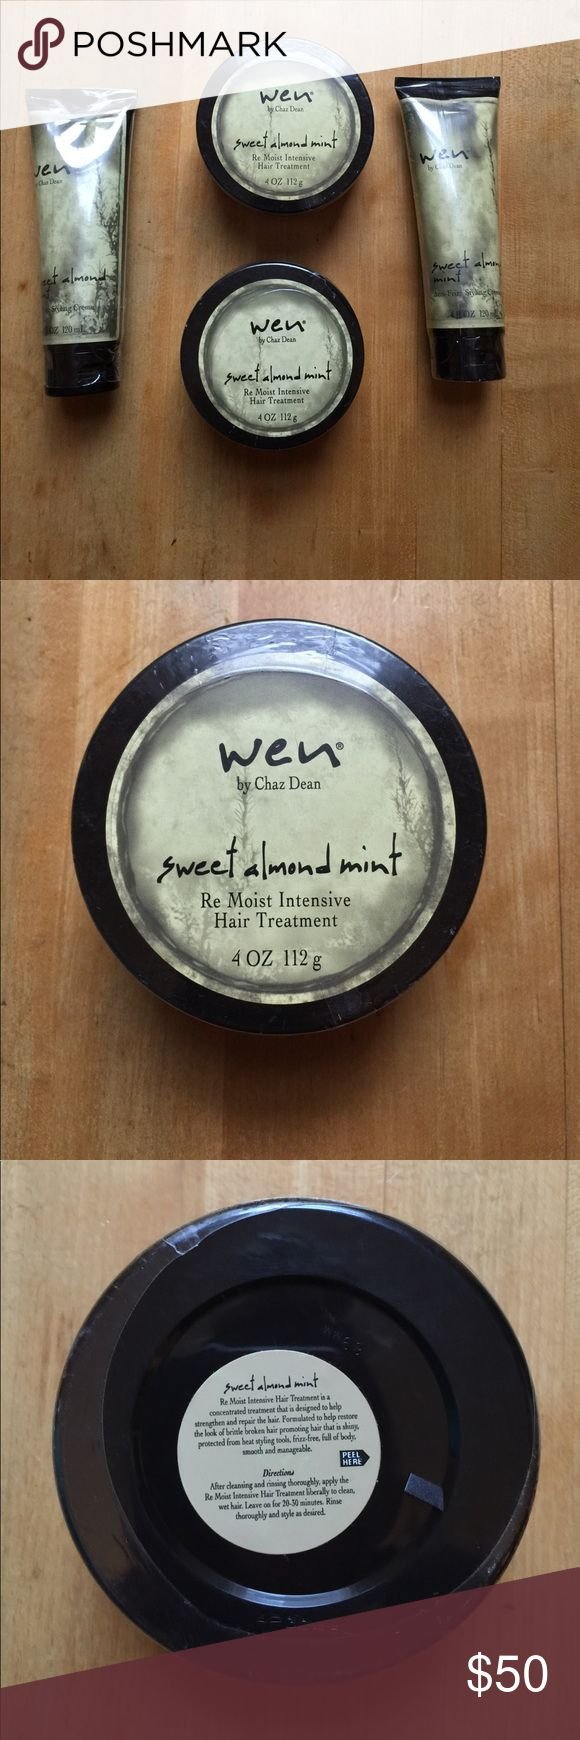 Wen By Chaz Dean Hair Product Bundle!! NWT Chaz Dean Wen hair product bundle!! There are two 4 fl OZ tubes of sweet almond mint anti-frizz styling creme and two 4 OZ containers of sweet almond mint Re Moist Intensive Hair Treatment! Bought them on QVC and $58.00 each set!! Wen by Chaz Dean Accessories Hair Accessories